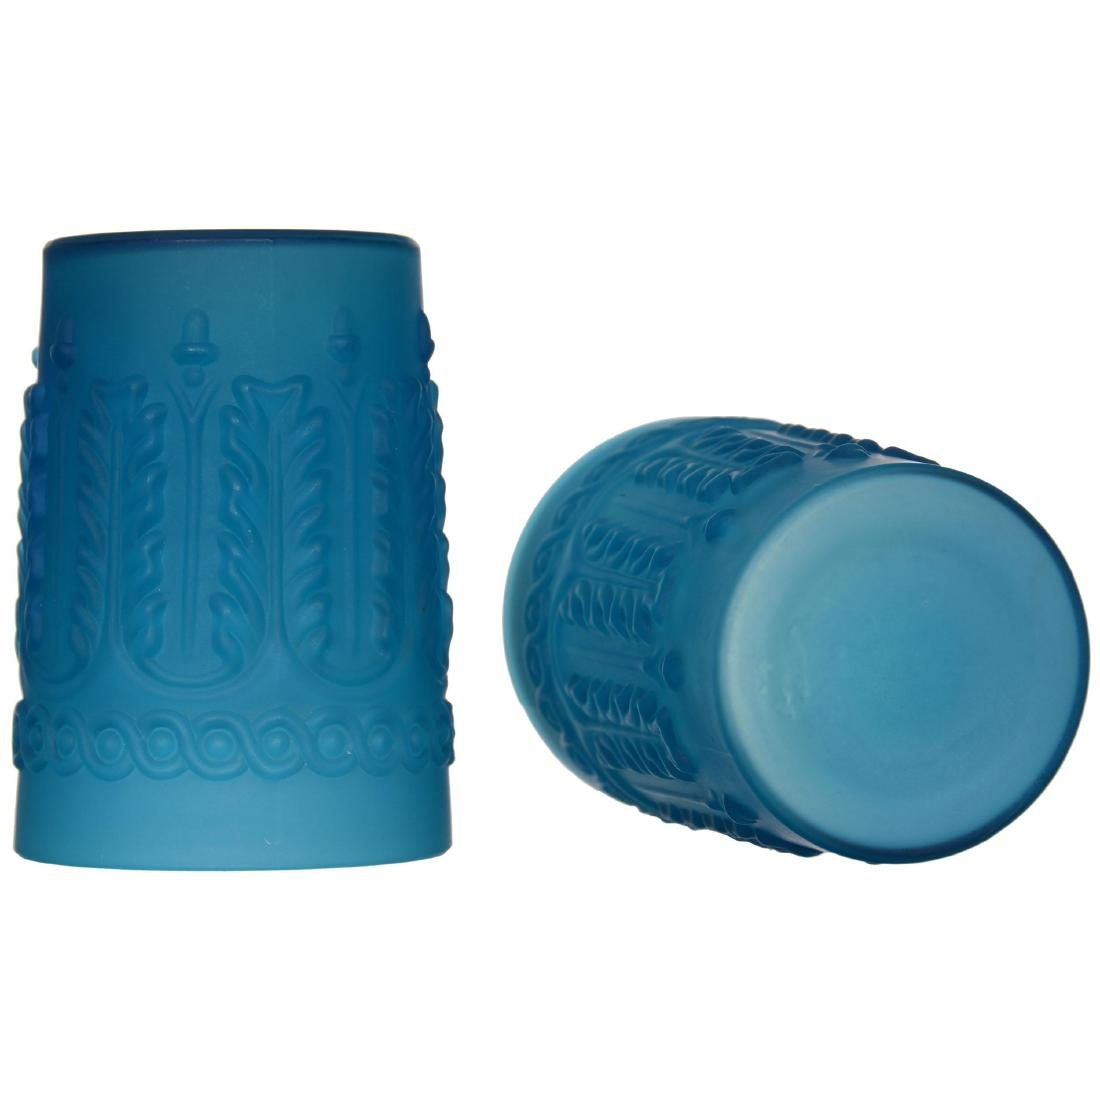 Frosted Blue Cased Art Glass Water Set - 5